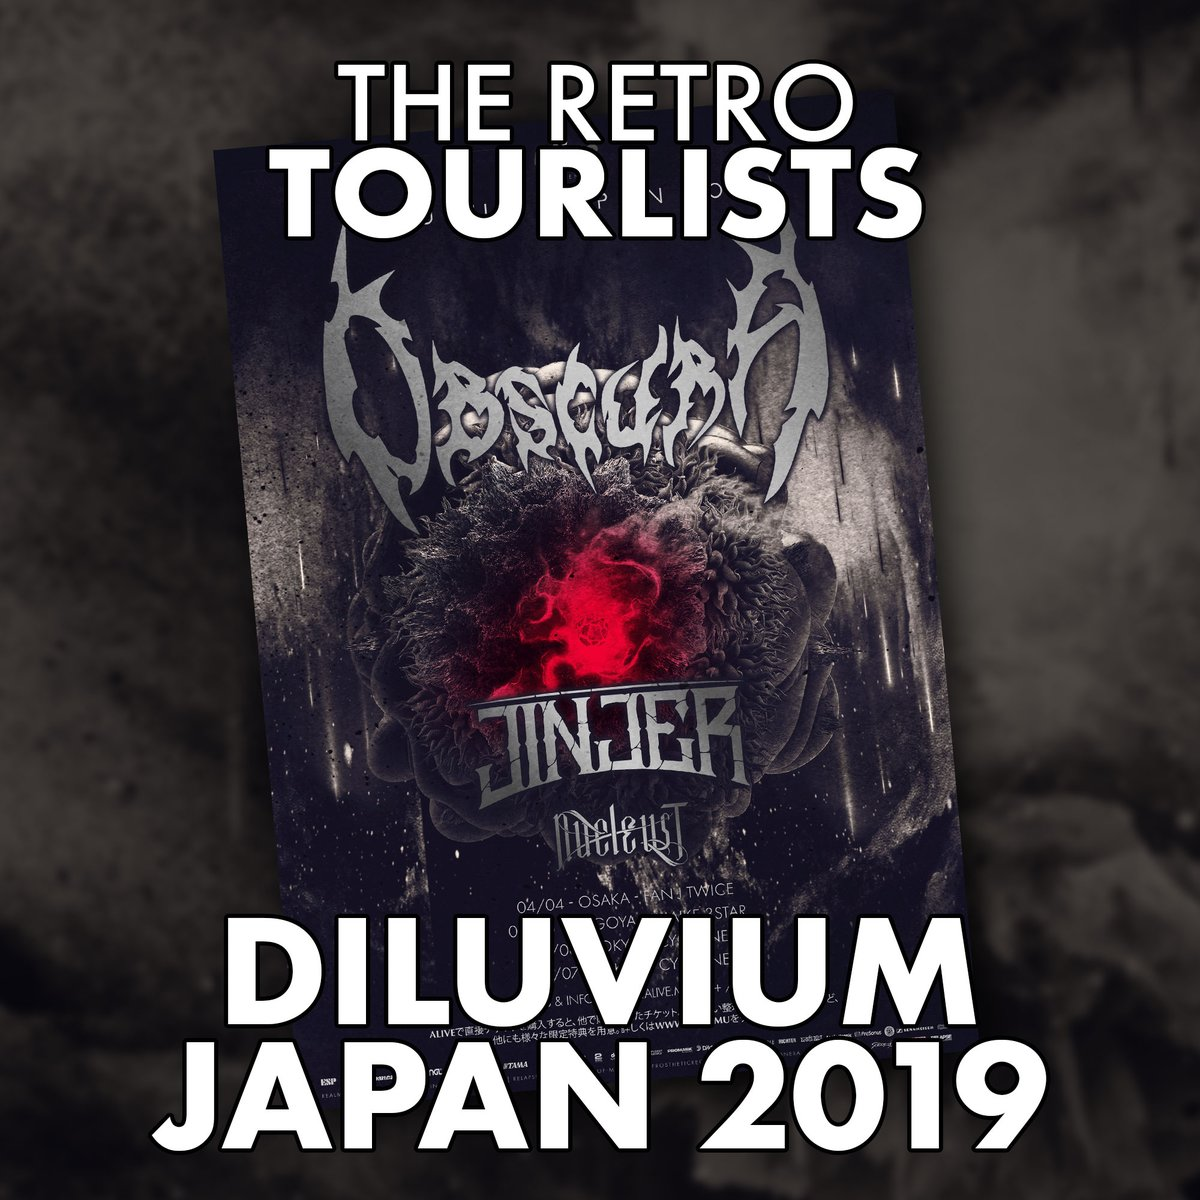 New playlist on Spotity!  Join us on a throwback to the DILUVIUM JAPAN 2019 tour with Jinjer and Mason. Enjoy 29 songs from this tour line-up here: https://t.co/Ka5pl6z4Y7  #obscura #jinjer #mason https://t.co/HCaG9UwgNX